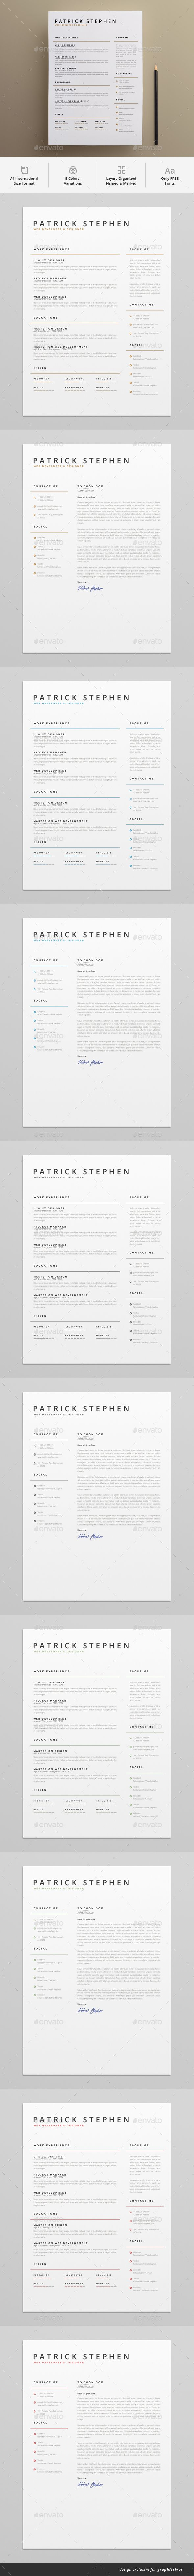 #Resume - Resumes Stationery Download here: https://graphicriver.net/item/resume/19224274?ref=alena994